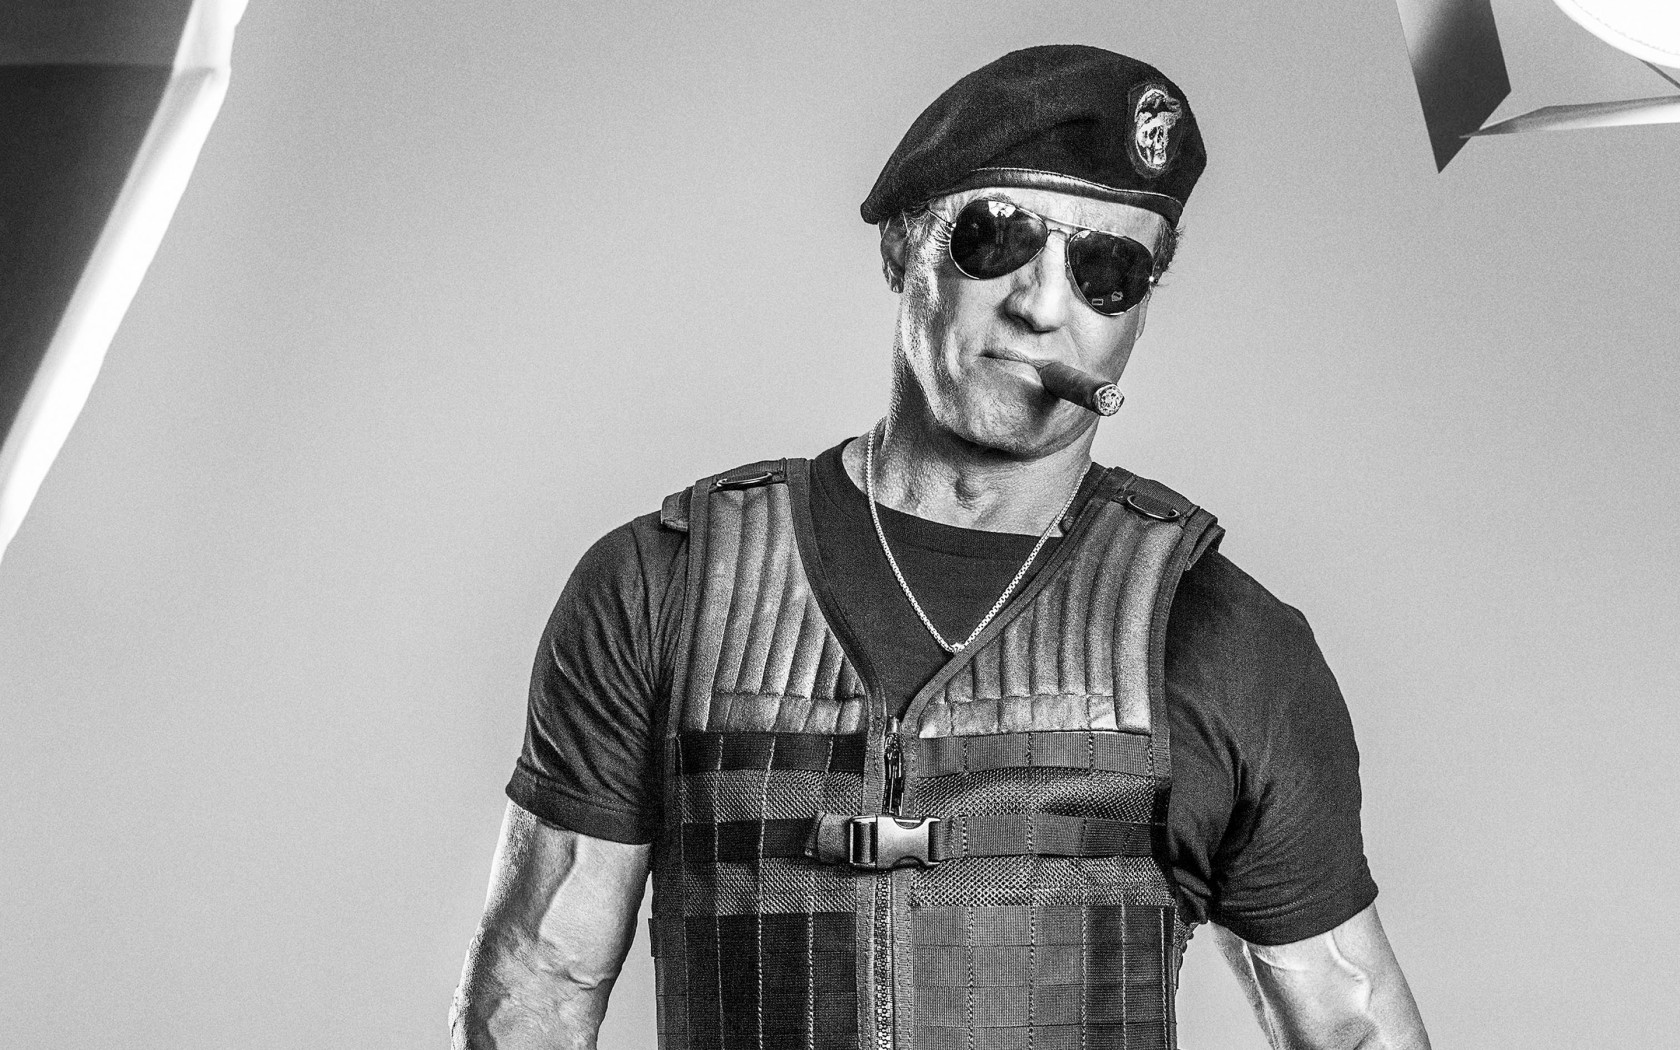 4k Wallpapers For Pc Cars Sylvester Stallone In The Expendables 3 Wallpapers Hd